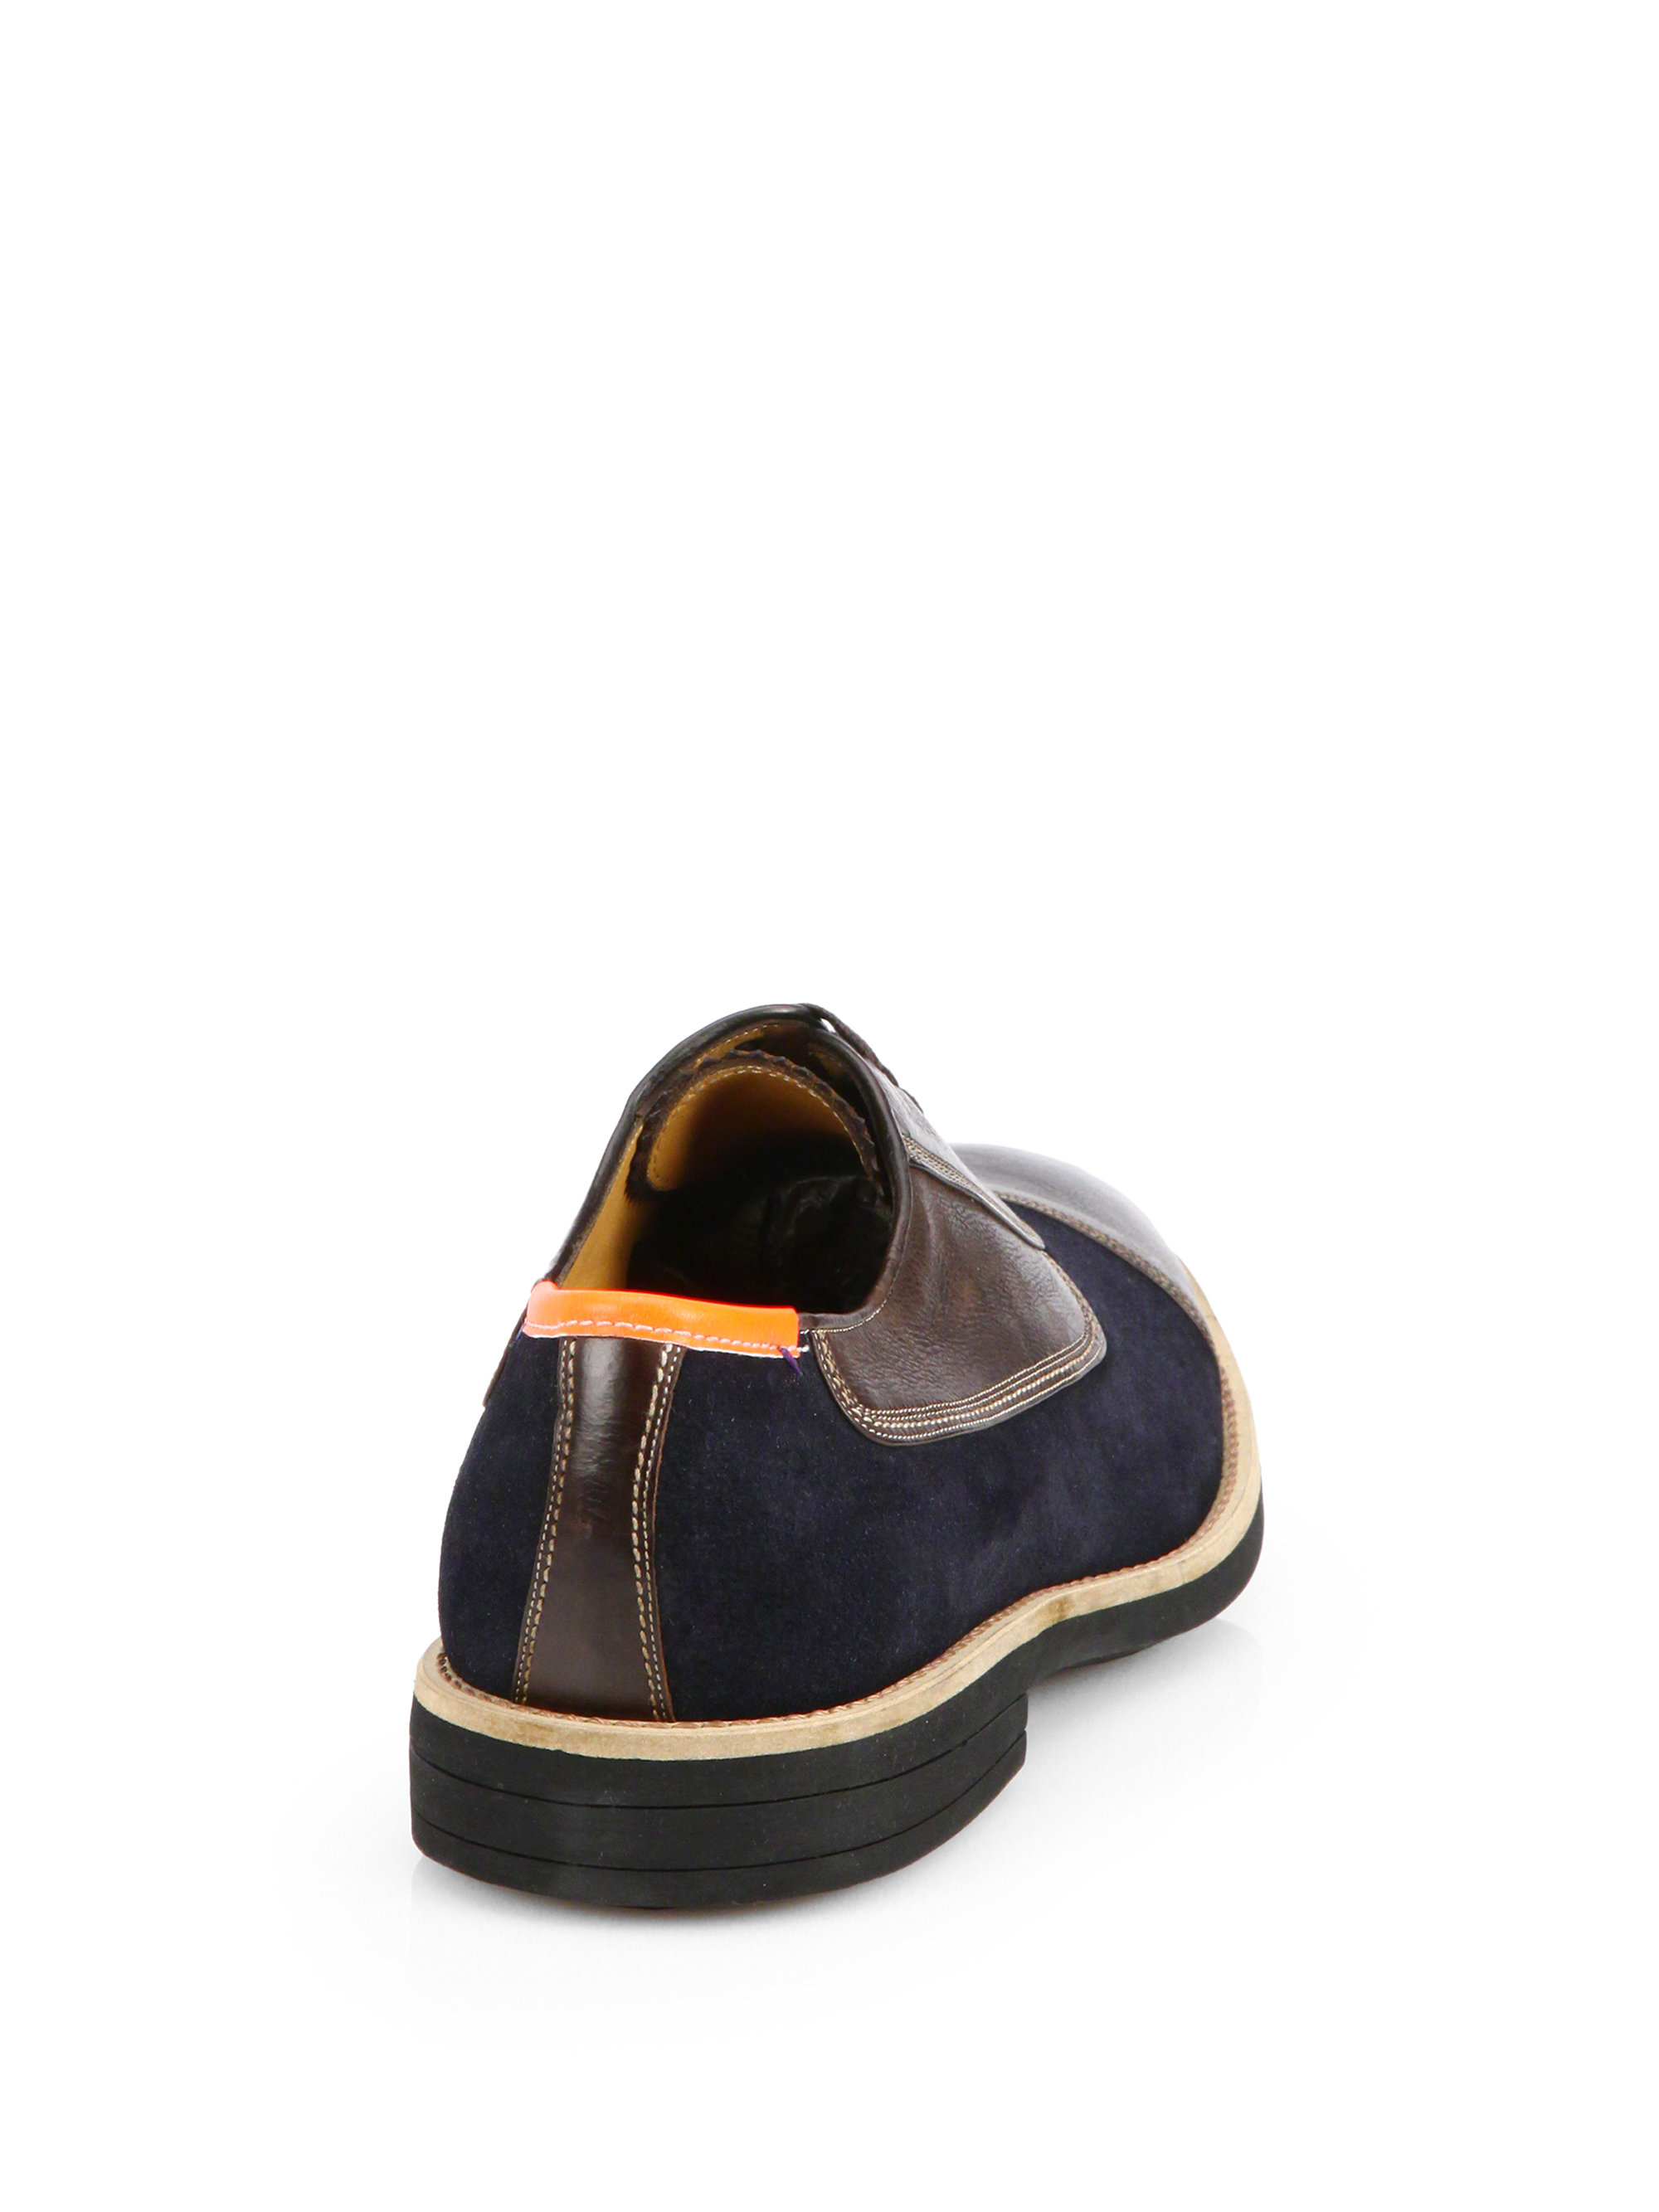 Paul Smith Brown Dress Shoes